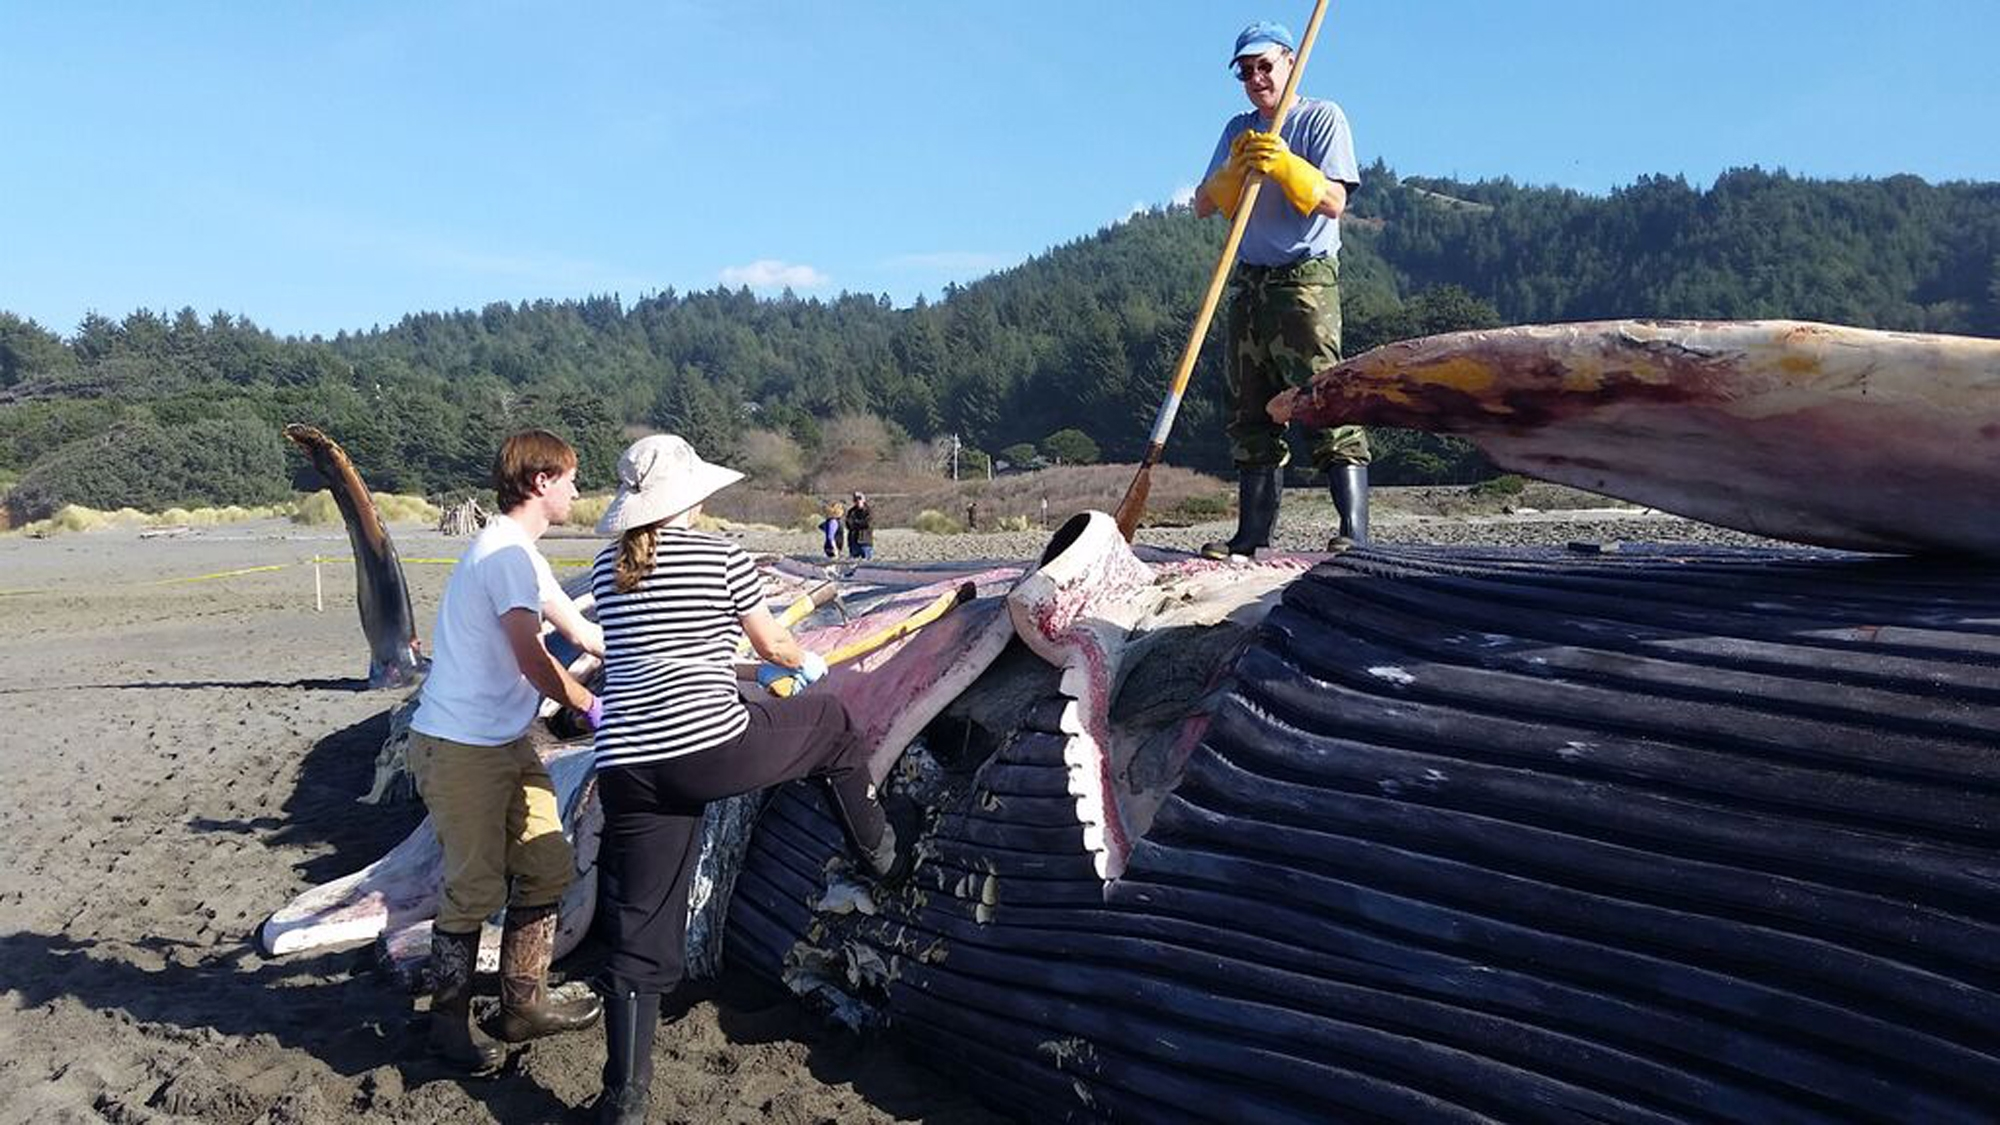 This undated photo supplied by the Oregon Parks and Recreation Department, researchers harvest the carcass of a blue whale that washed up on the beach recently near Gold Beach, Ore.  Authorities estimate that the 78-foot long dead blue whale{&amp;nbsp;} was dead for about two weeks before it washed up onto the sandy beach. (Oregon Parks and Recreation Department via AP)<p></p>